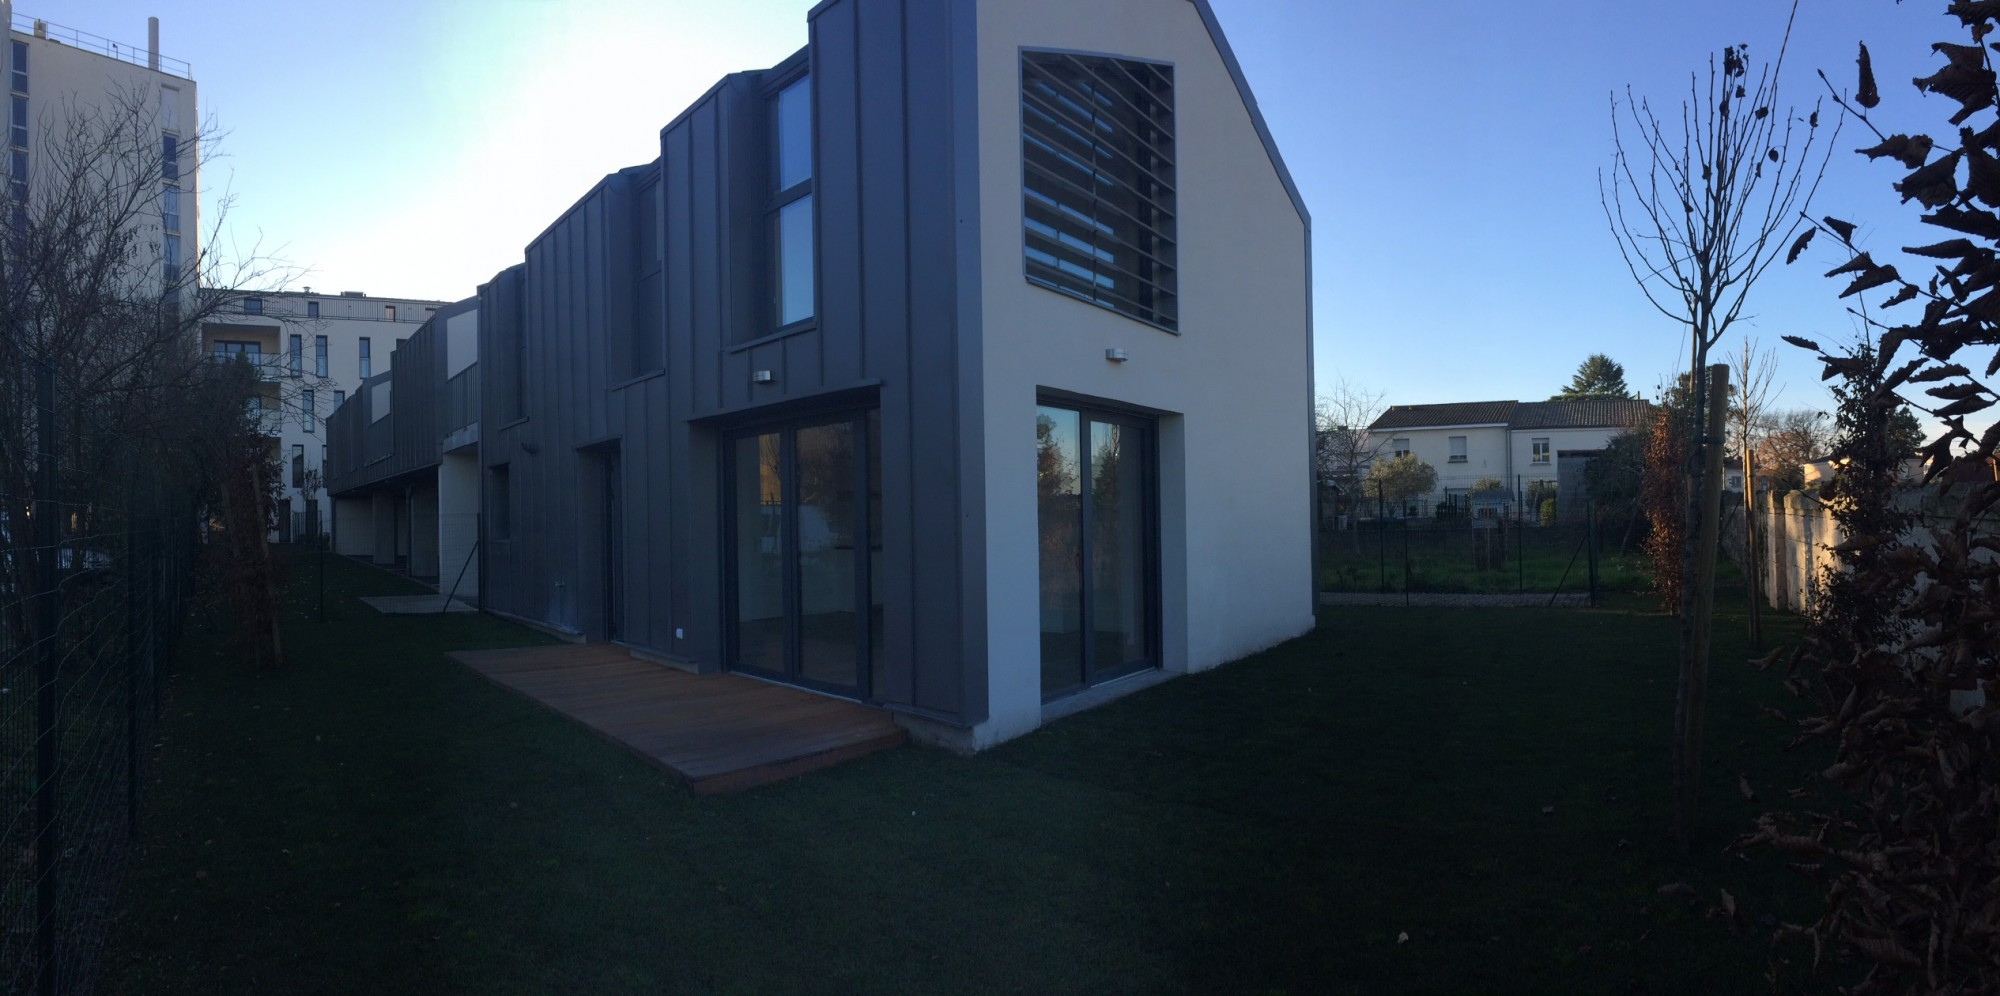 Location maison t4 f4 bordeaux caud ran bru immobilier for Maison cauderan